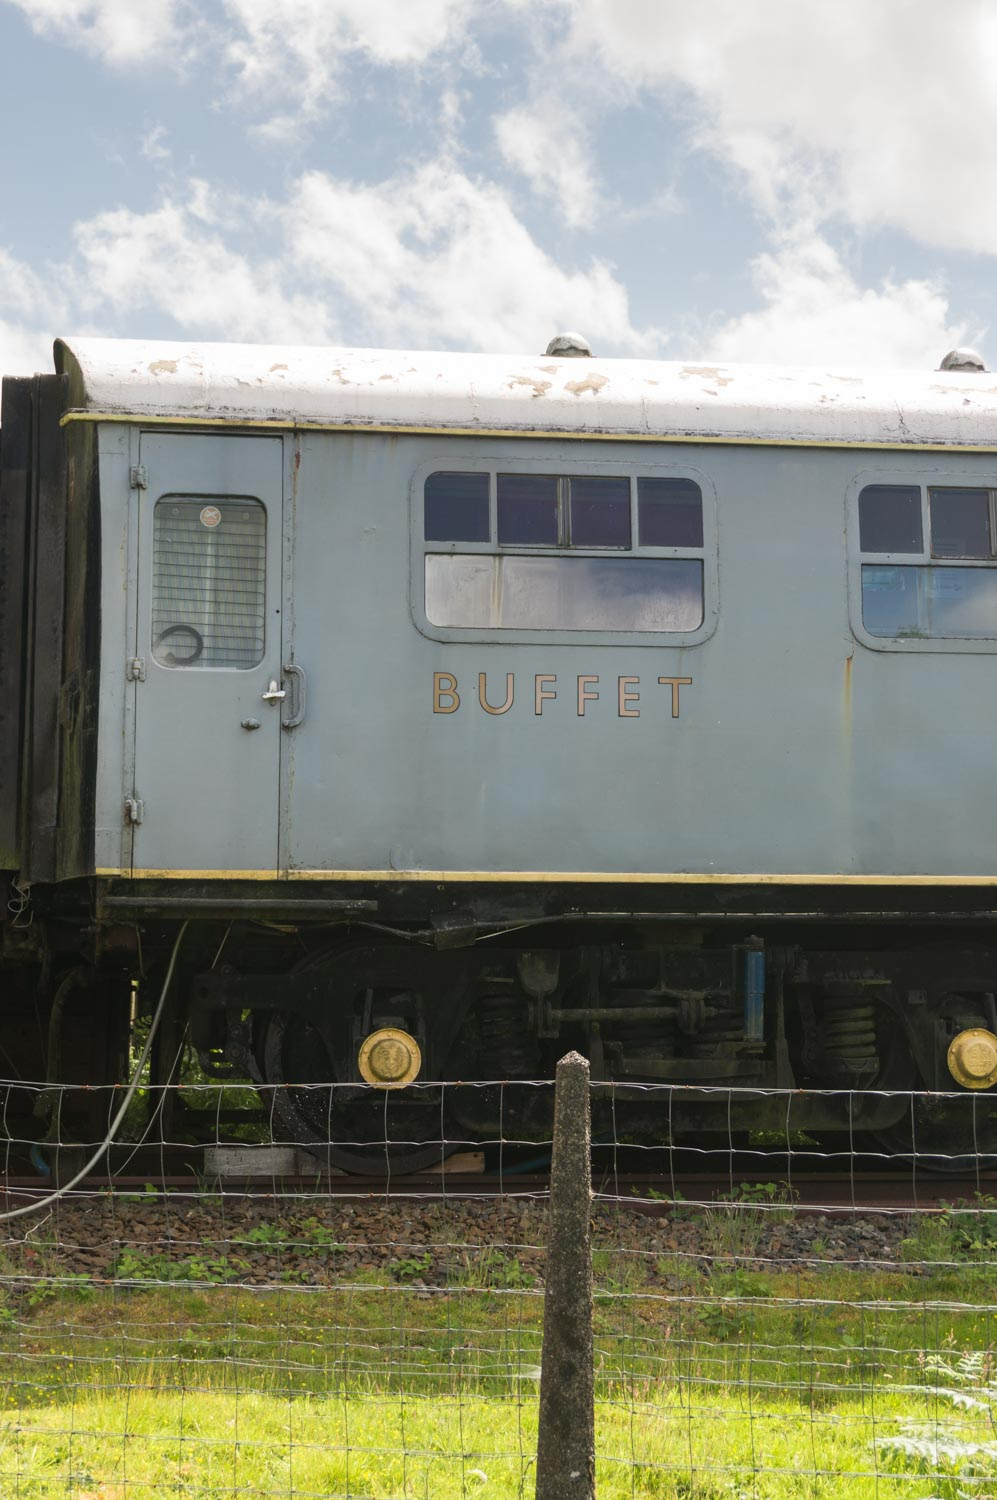 Went on a bike ride past old railway cars